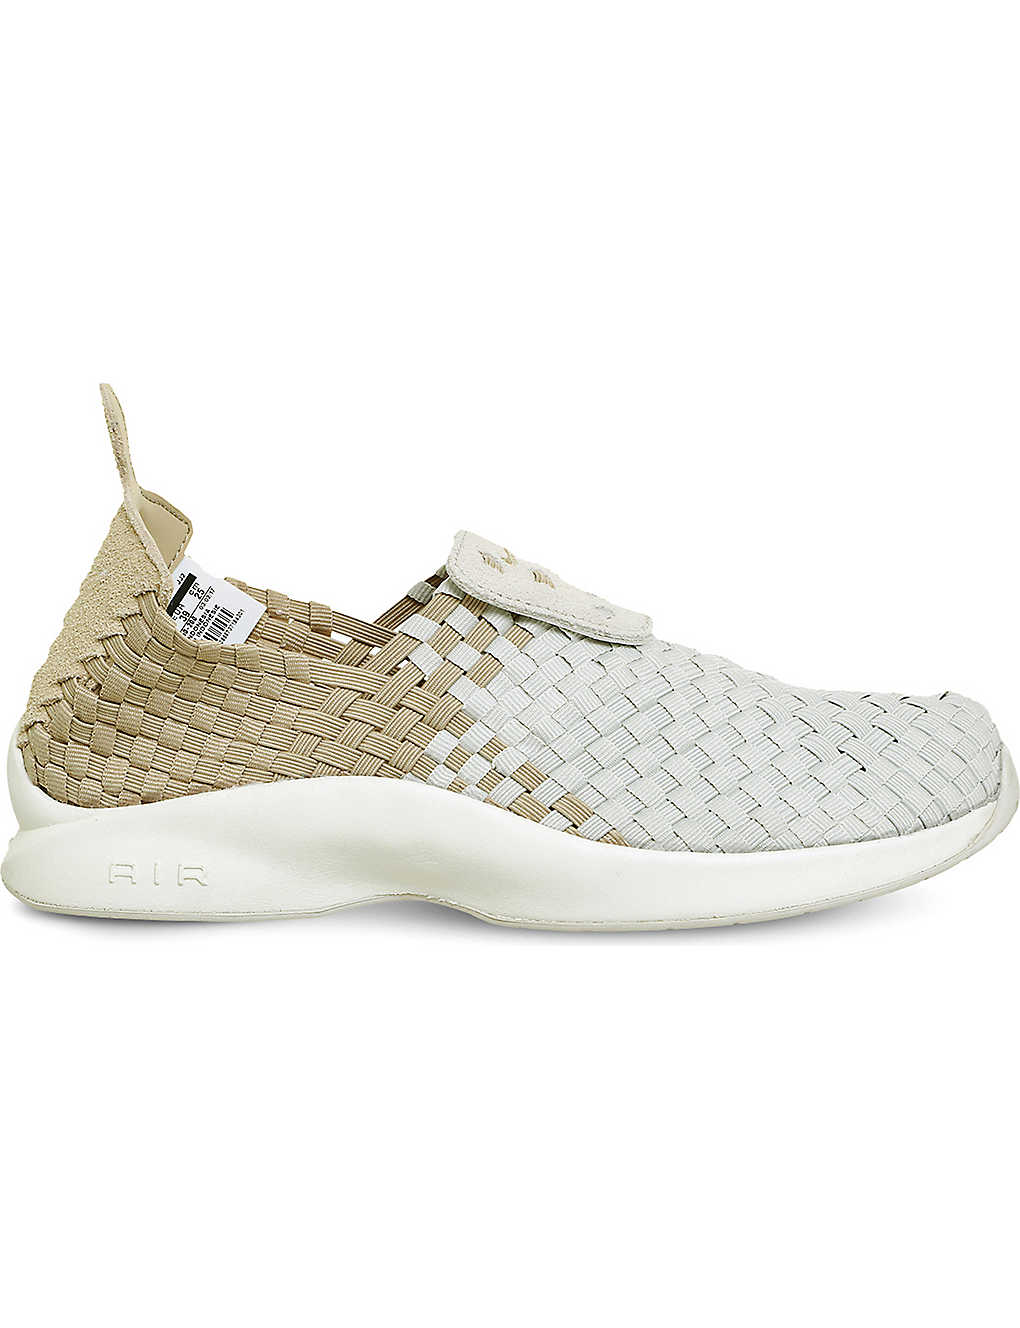 NIKE - Air woven trainers  bde85c0bfd3f